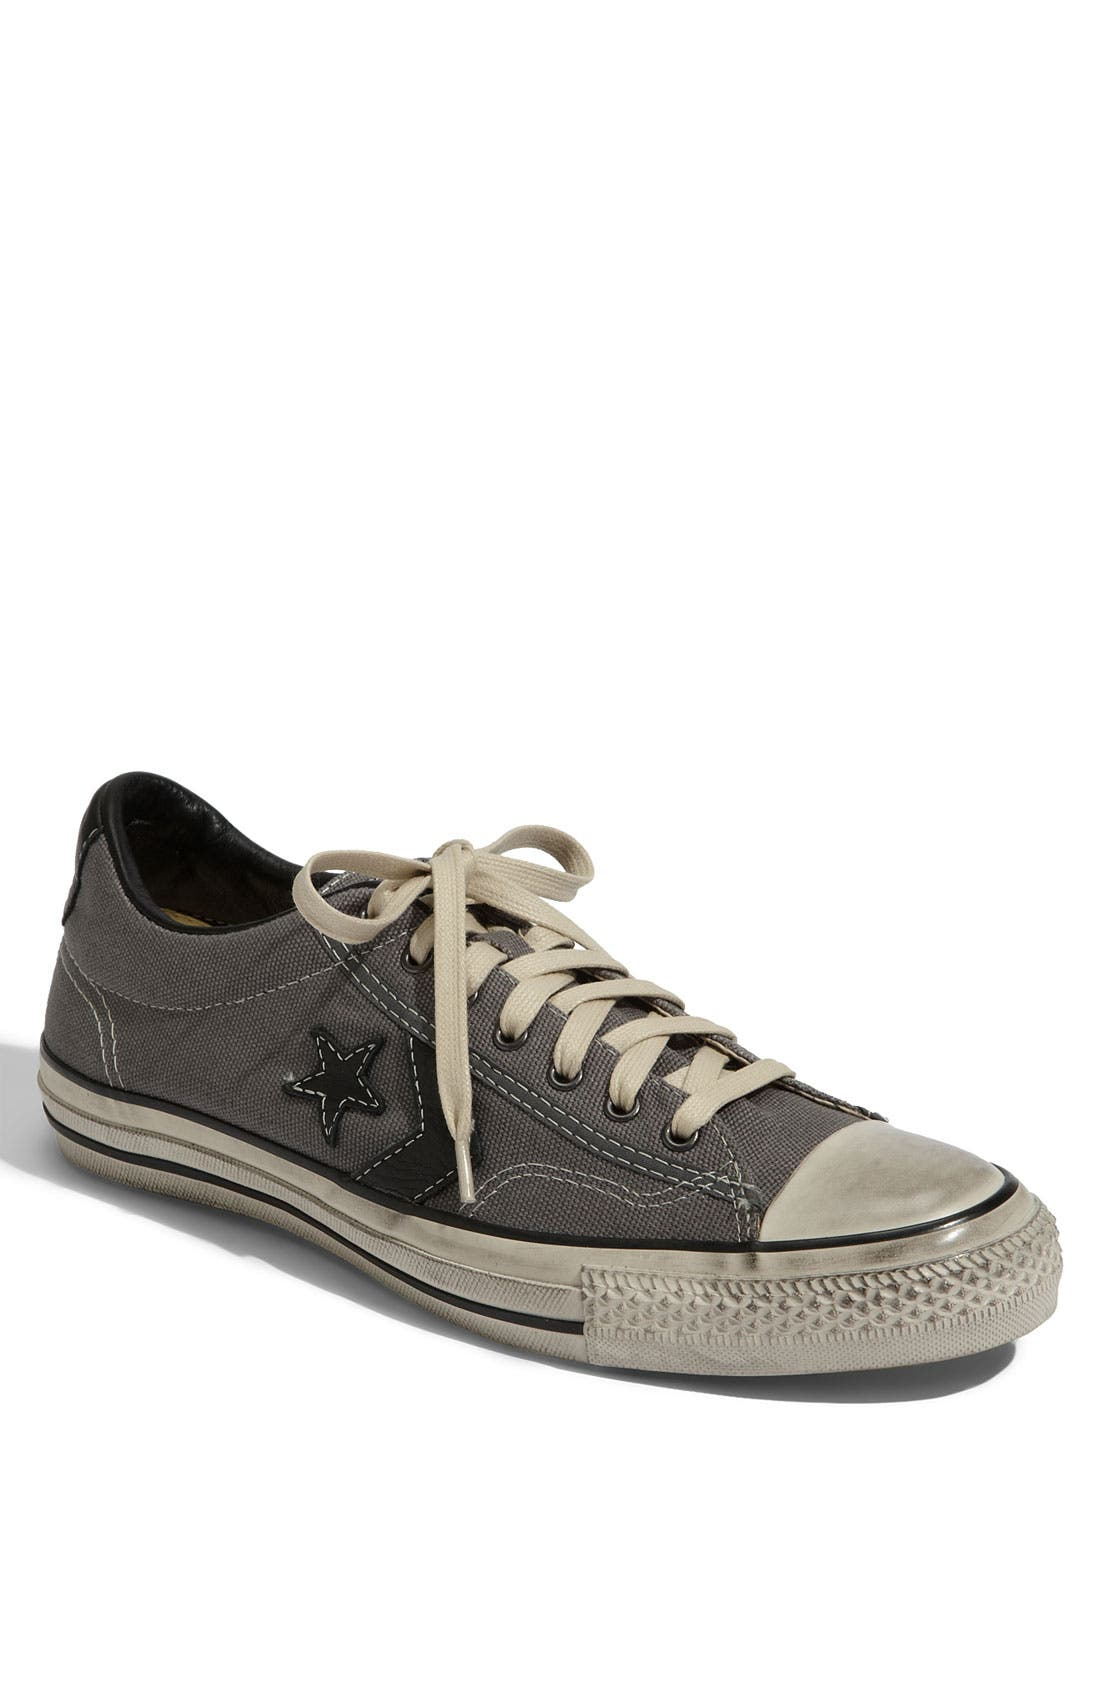 Alternate Image 1 Selected - Converse by John Varvatos 'Star Player' Canvas Sneaker (Men)